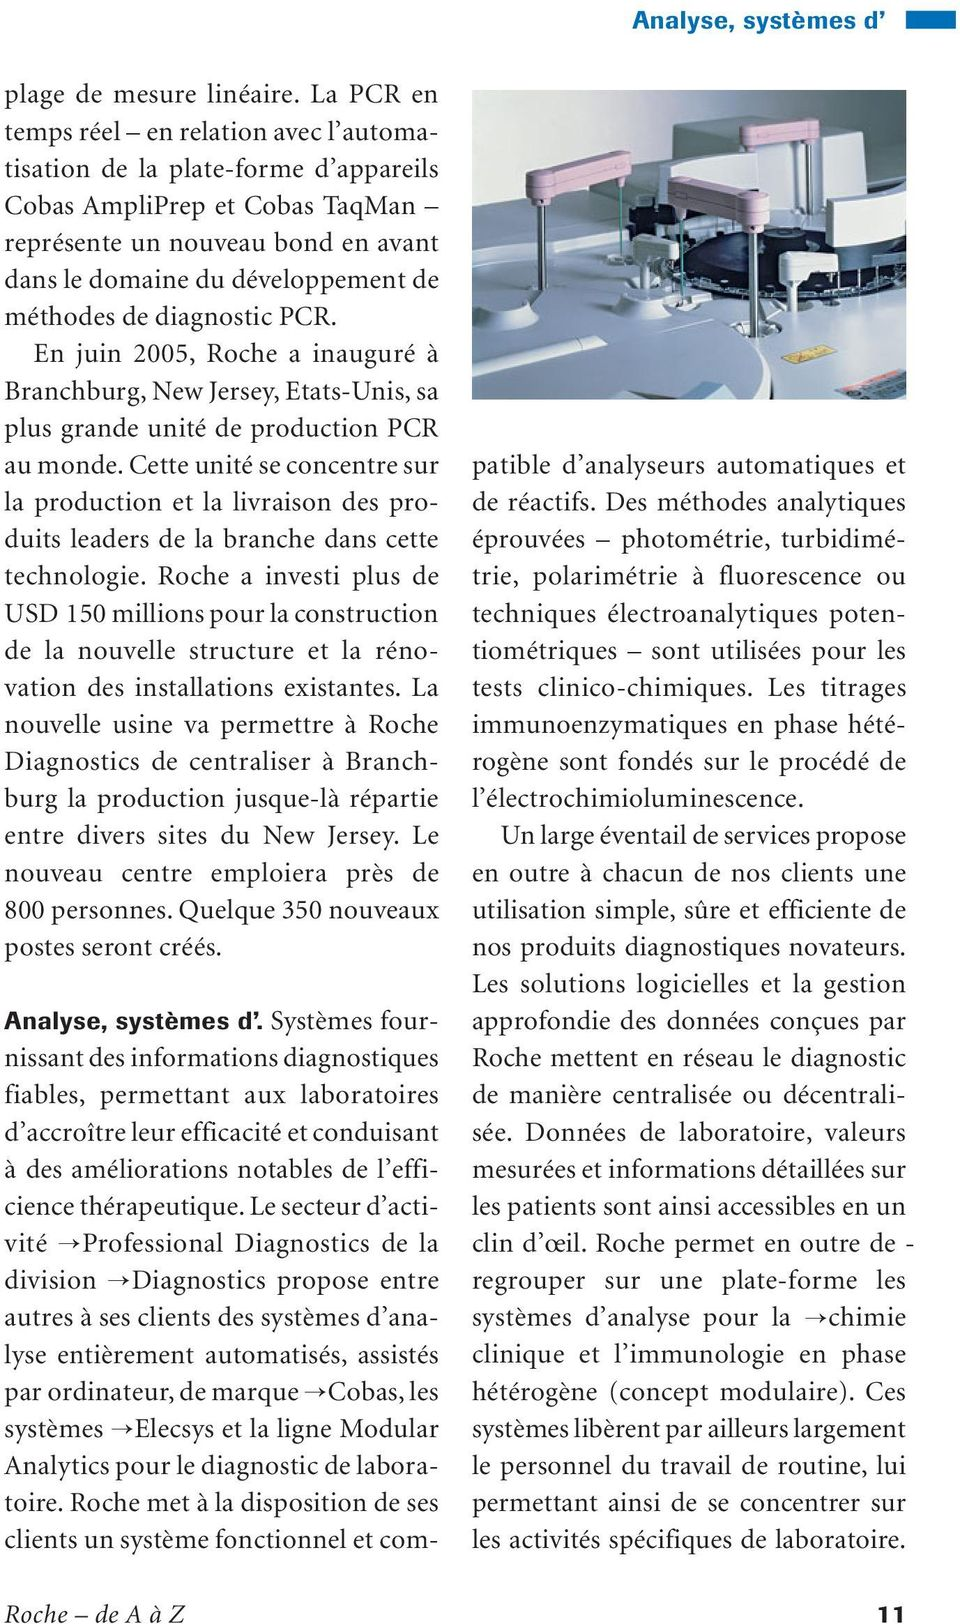 de diagnostic PCR. En juin 2005, Roche a inauguré à Branchburg, New Jersey, Etats-Unis, sa plus grande unité de production PCR au monde.